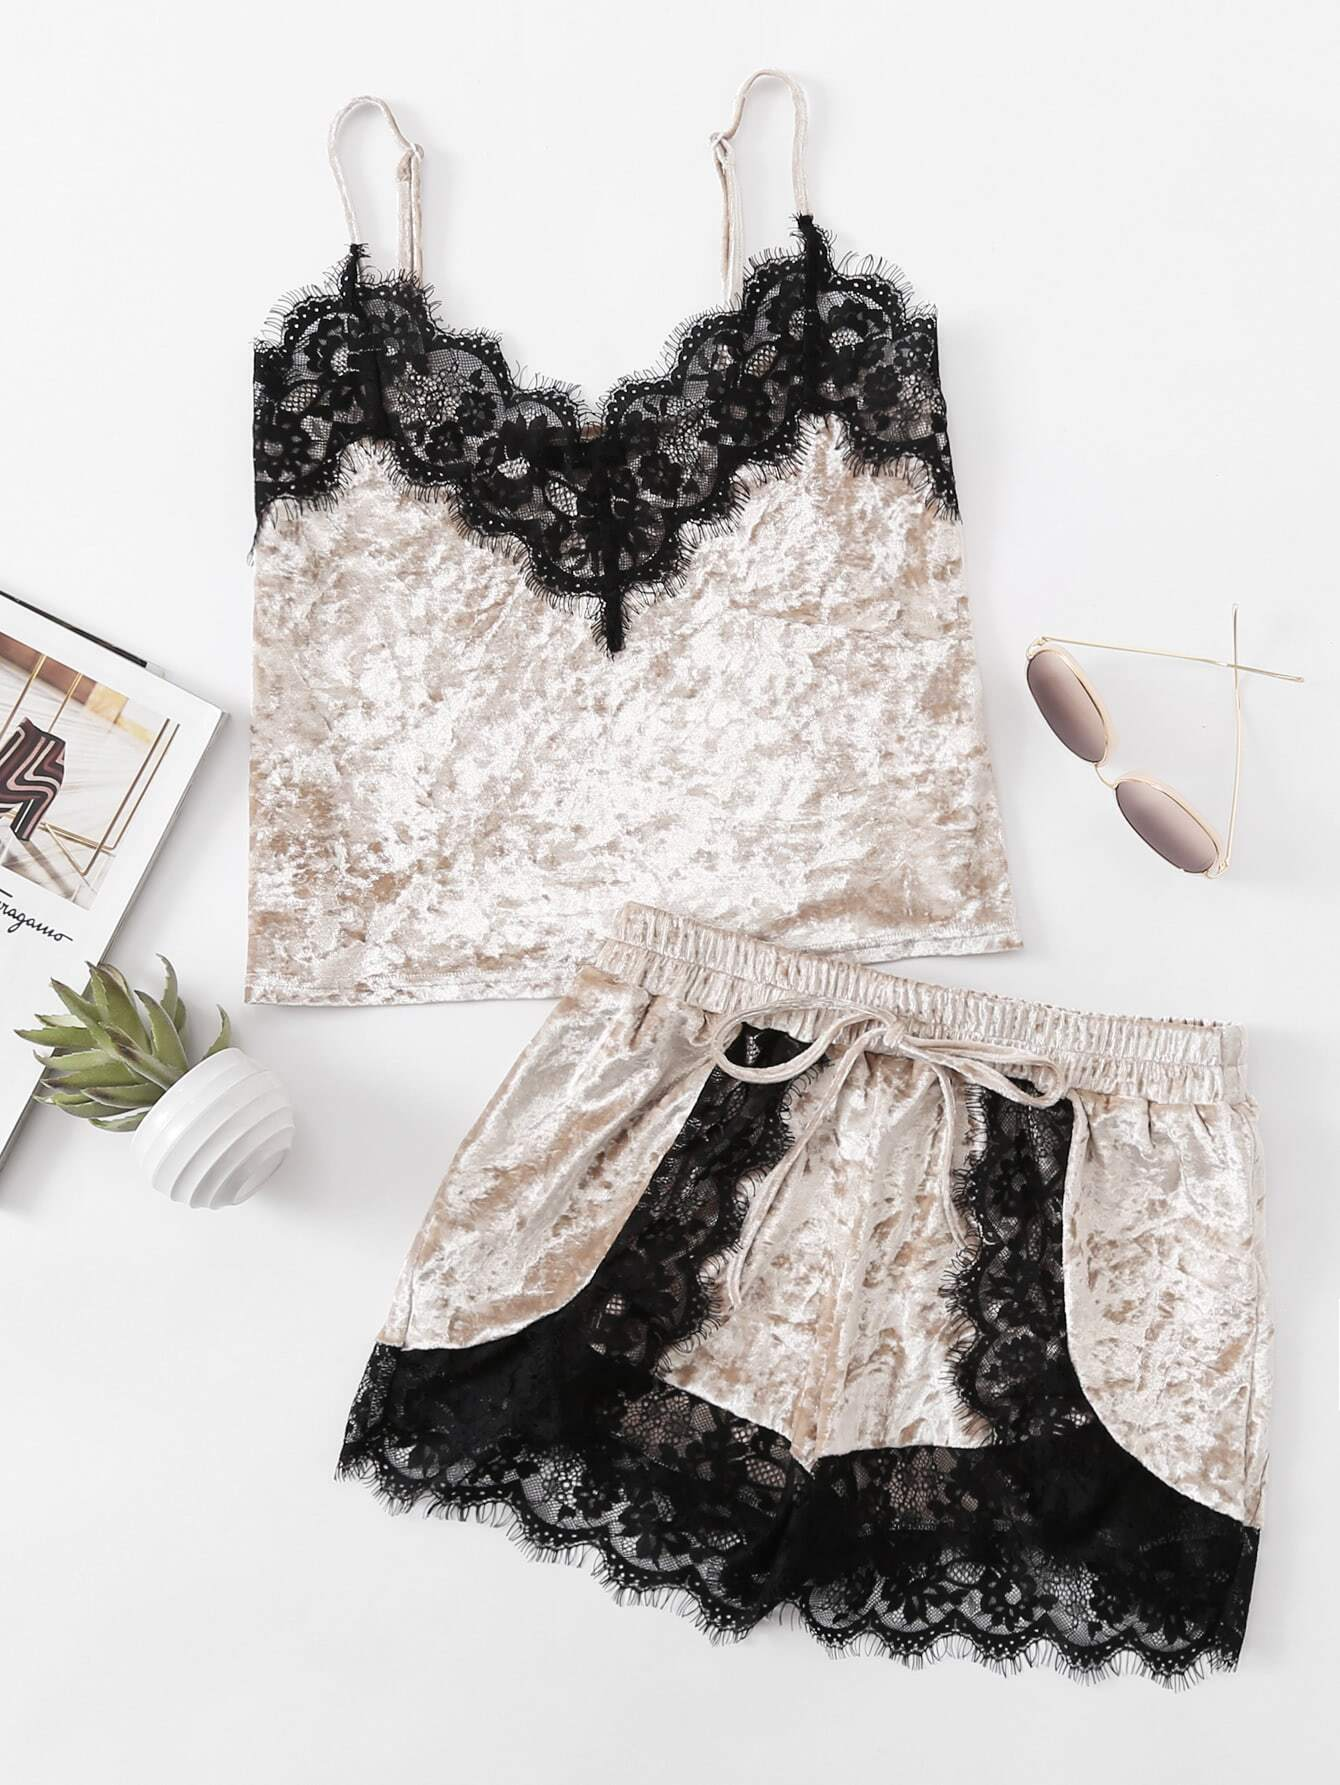 Eyelash Lace Trim Velvet Cami & Shorts Pajama Set contrast lace cami with shorts pajama set